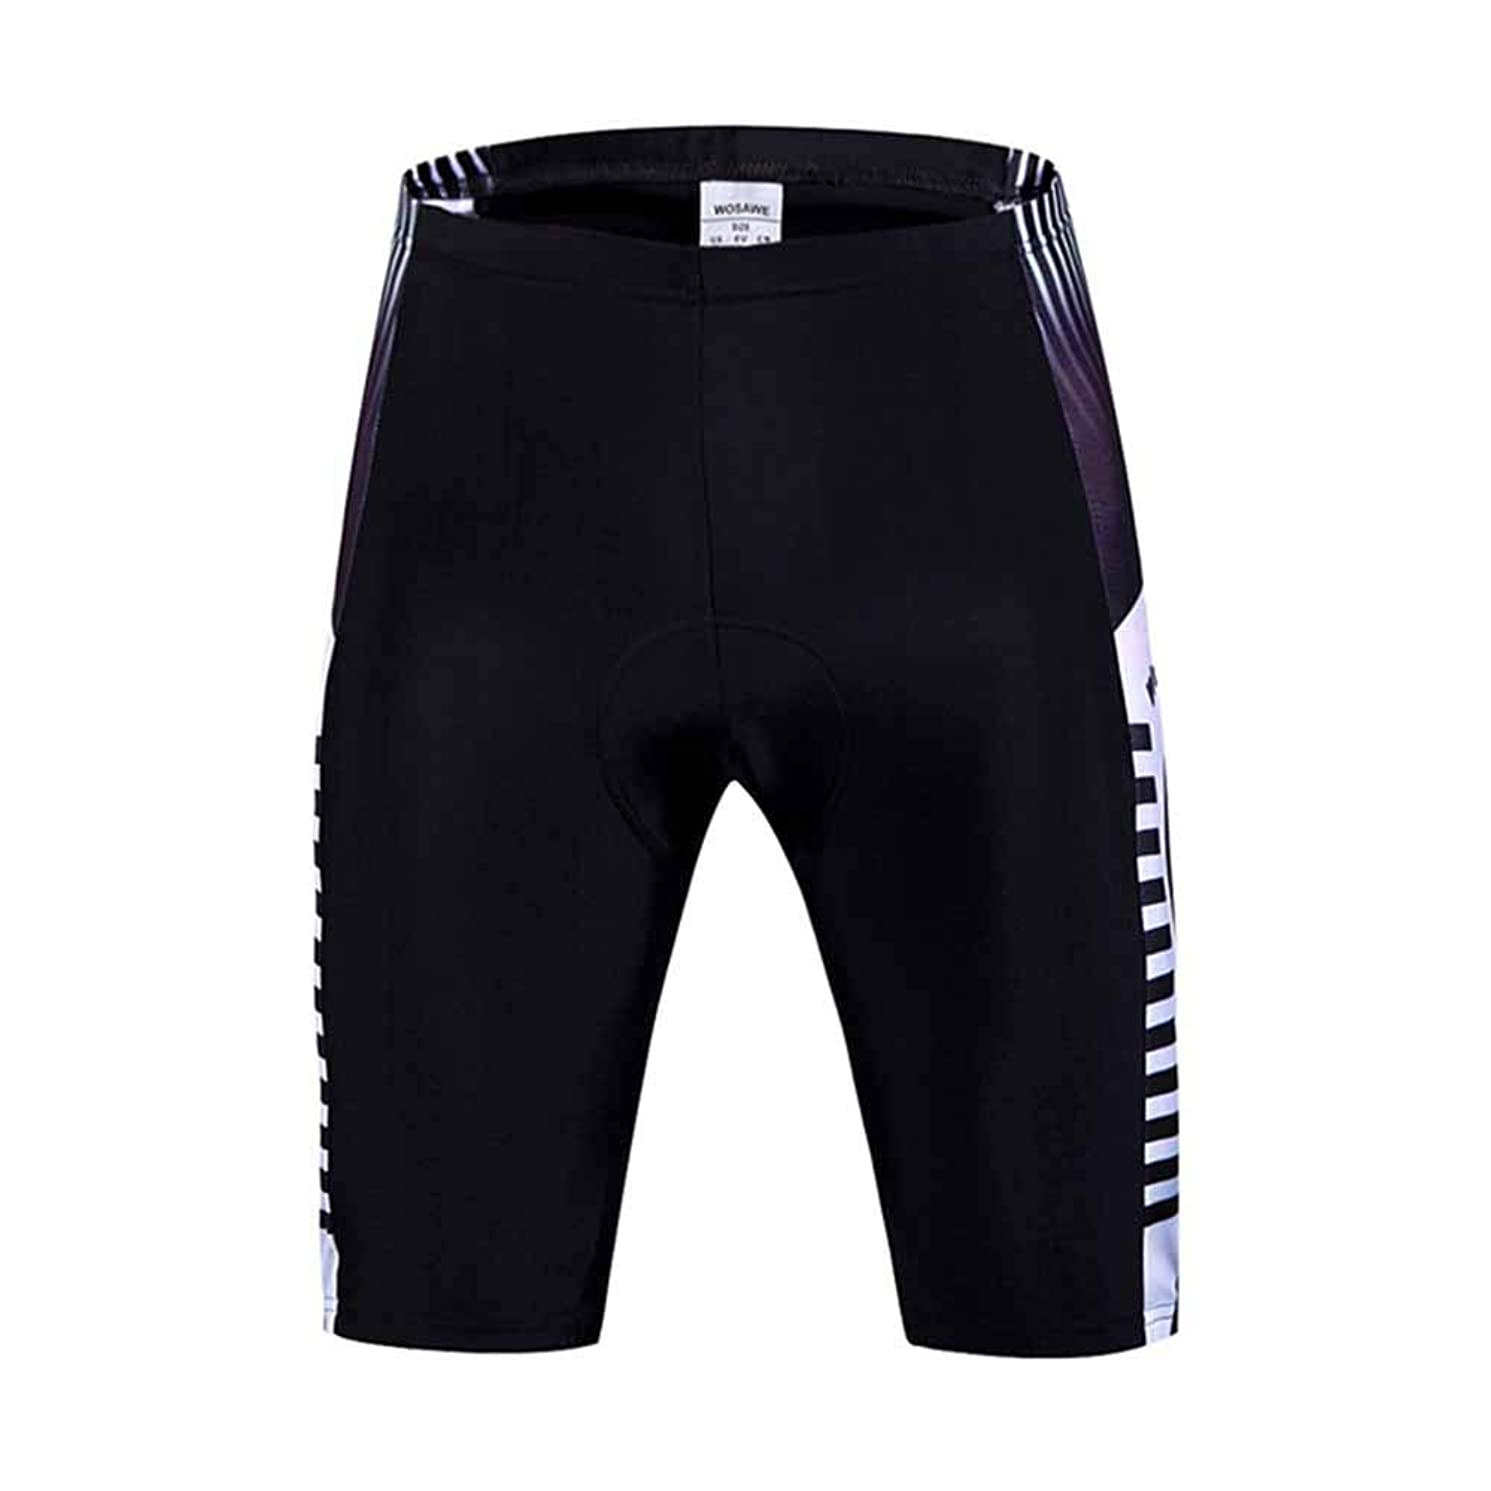 Bike Shorts Men,Cycling Shorts Men Padded Underwear,Suitable for Long and Short Rides, Short Distance Road Races